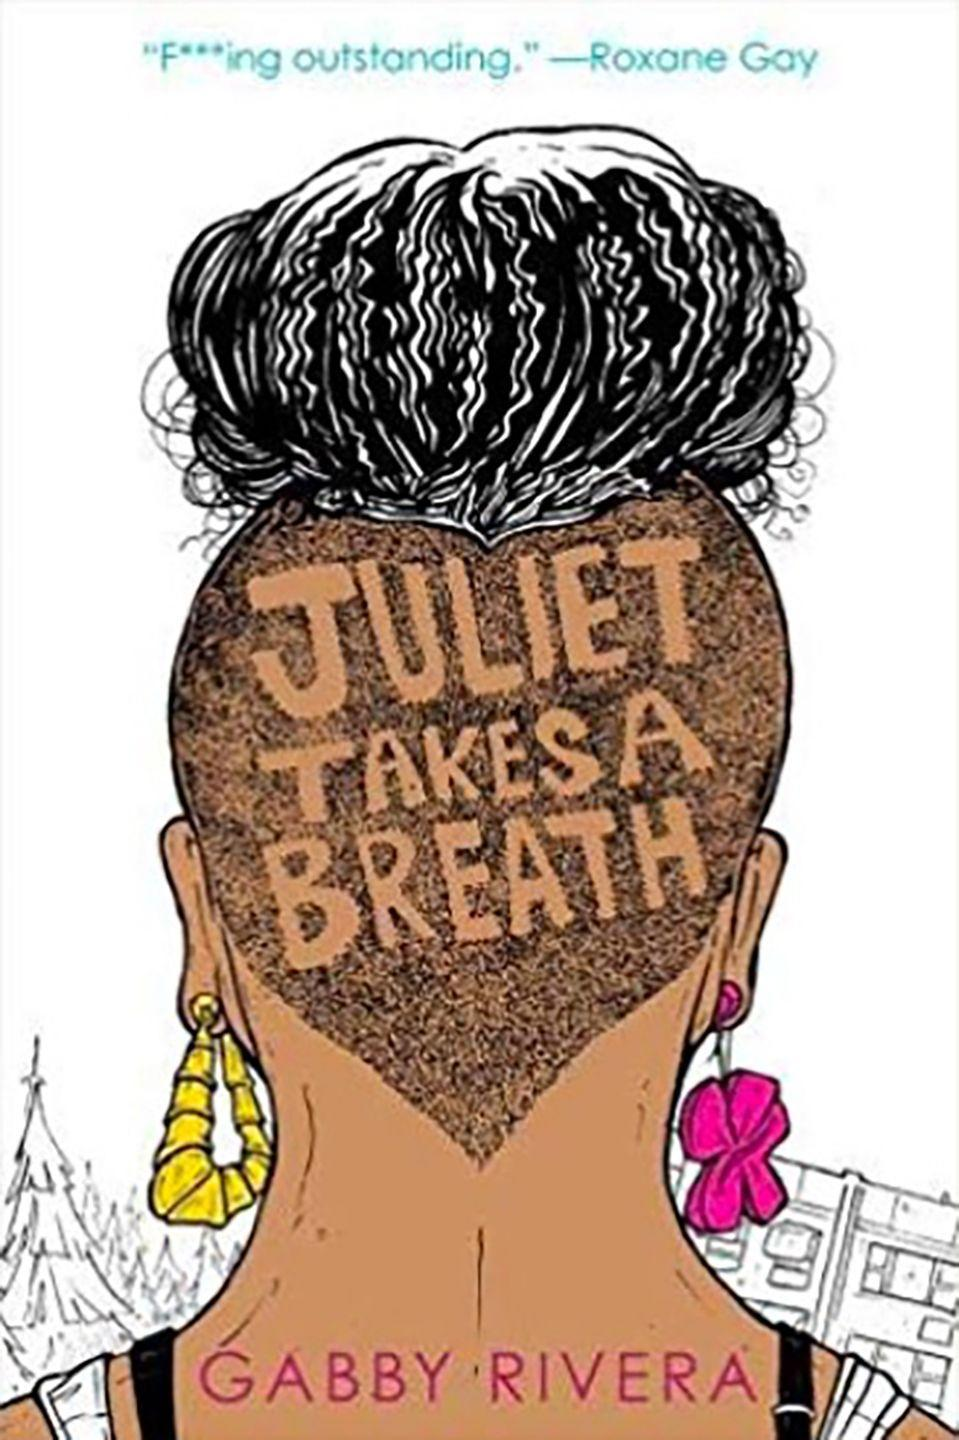 """<p><a class=""""link rapid-noclick-resp"""" href=""""https://www.amazon.co.uk/Juliet-Takes-Breath-Gabby-Rivera/dp/1368026303/ref=sr_1_1?keywords=Juliet+Takes+A+Breath+by+Gabby+Rivera&qid=1567161886&s=gateway&sr=8-1&tag=hearstuk-yahoo-21&ascsubtag=%5Bartid%7C1919.g.15922606%5Bsrc%7Cyahoo-uk"""" rel=""""nofollow noopener"""" target=""""_blank"""" data-ylk=""""slk:SHOP NOW"""">SHOP NOW</a> £15.99, Amazon</p><p>Juliet Milagros Palante, a self-proclaimed closeted Puerto Rican baby dyke from the Bronx, comes out to her parents the night before flying to Portland, Oregon, to intern for her favourite feminist writer. It doesn't go so well, and as she embarks on a summer that will be a full on exploration of race and identity, she wonders whether she'll ever speak to her mother again.<br></p>"""